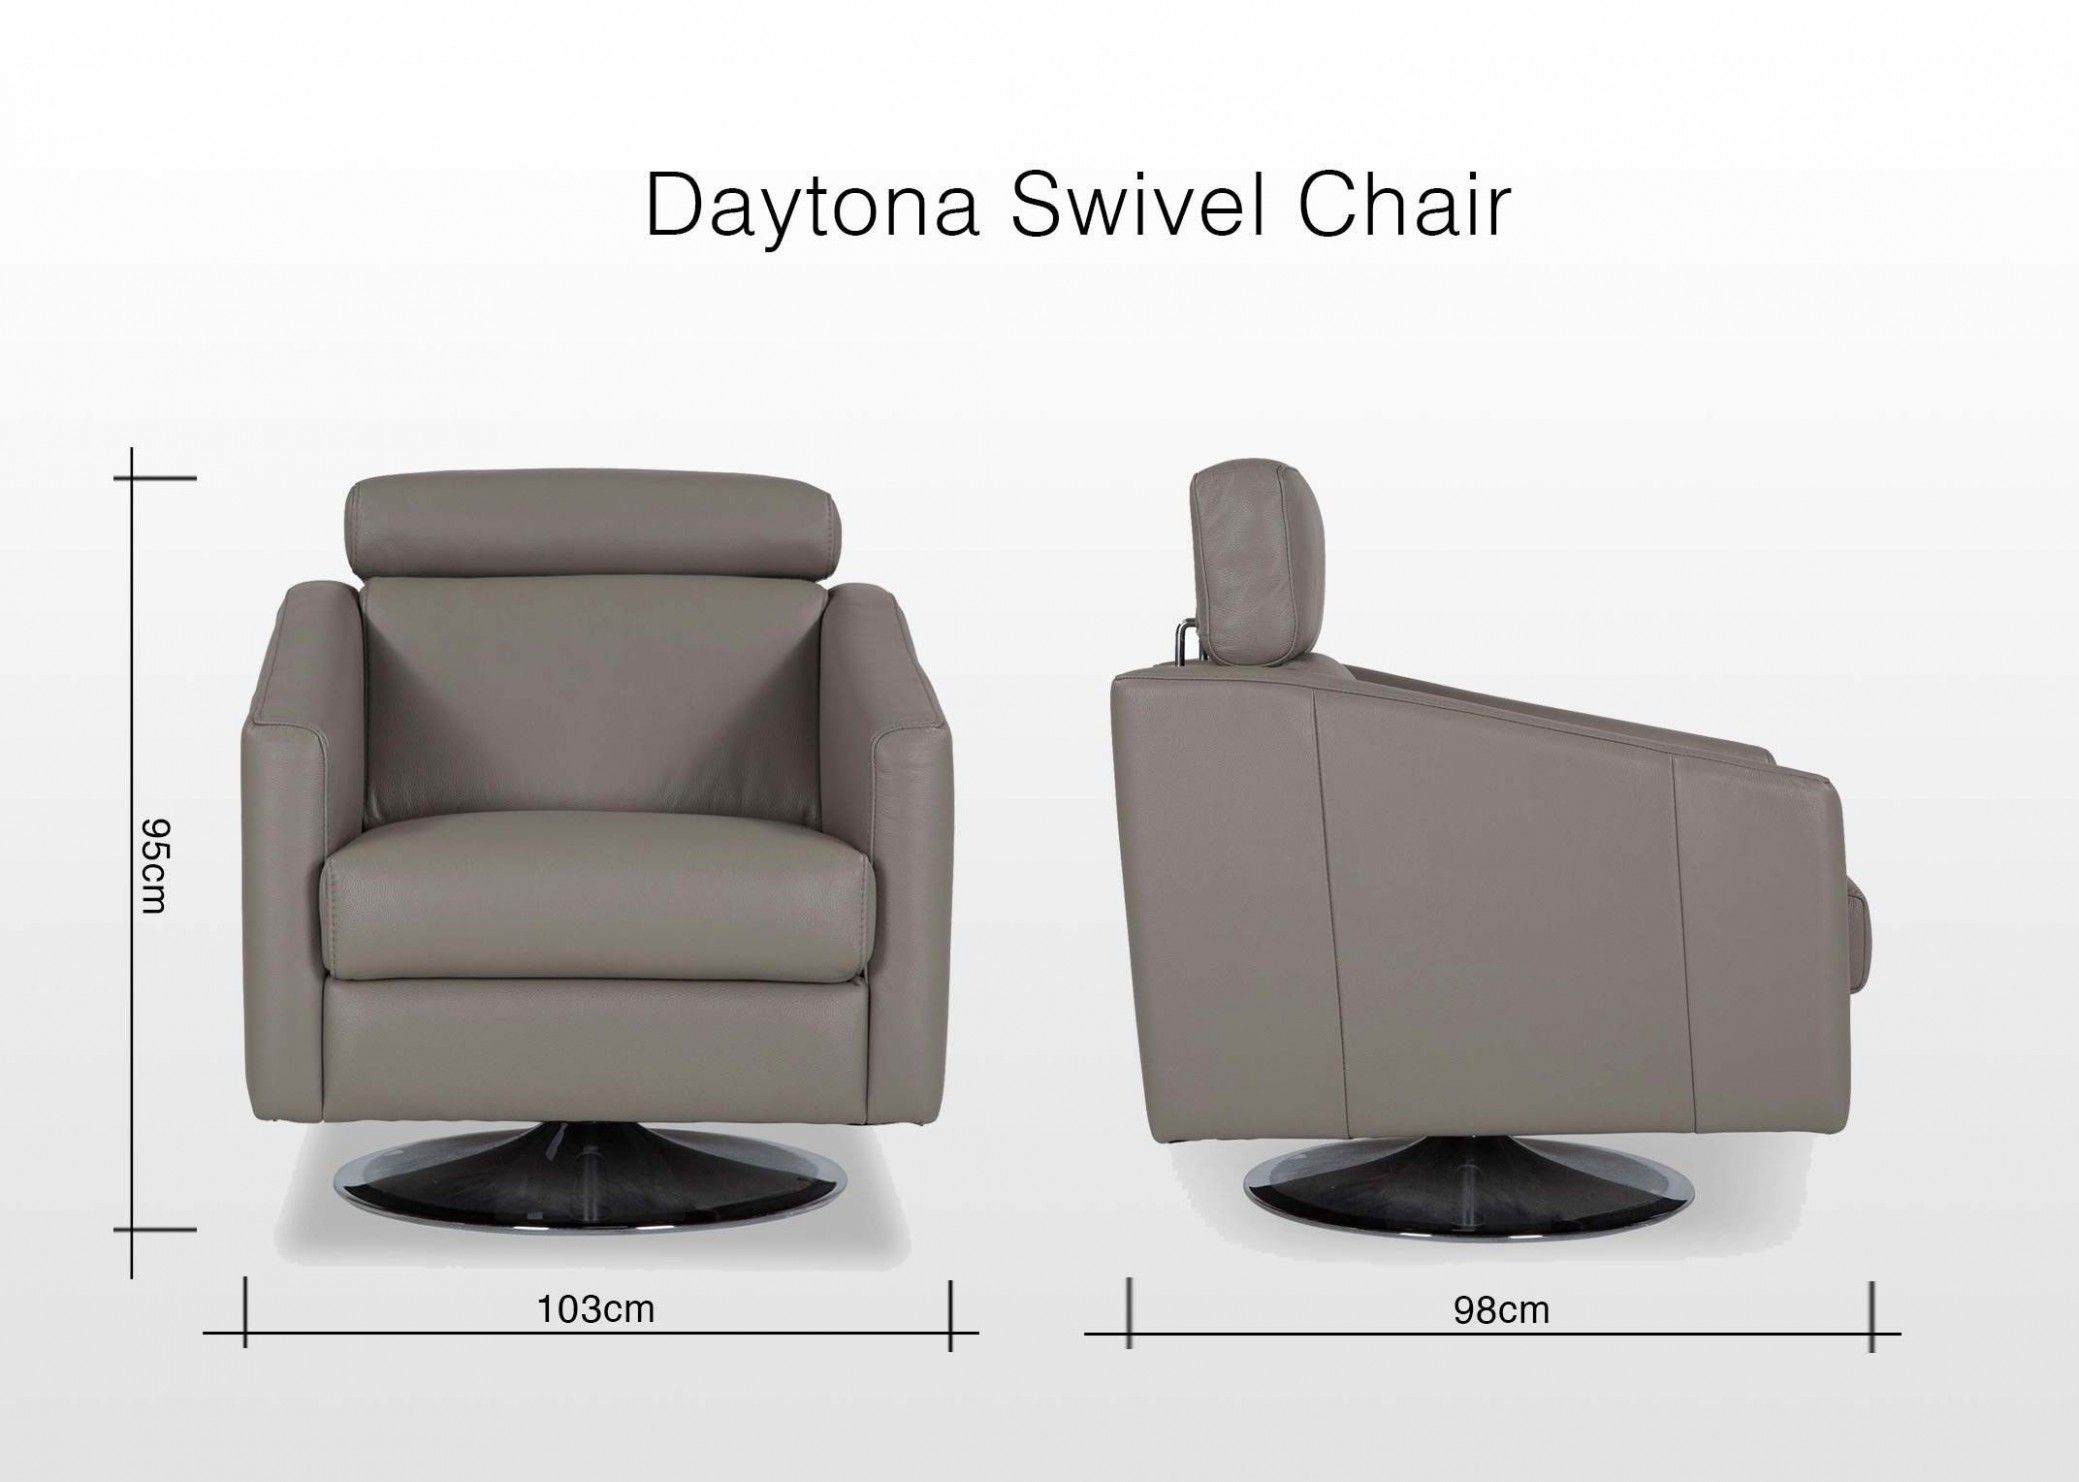 Design Drehstuhl Wohnzimmer in 9  Swivel chair, Massage chair